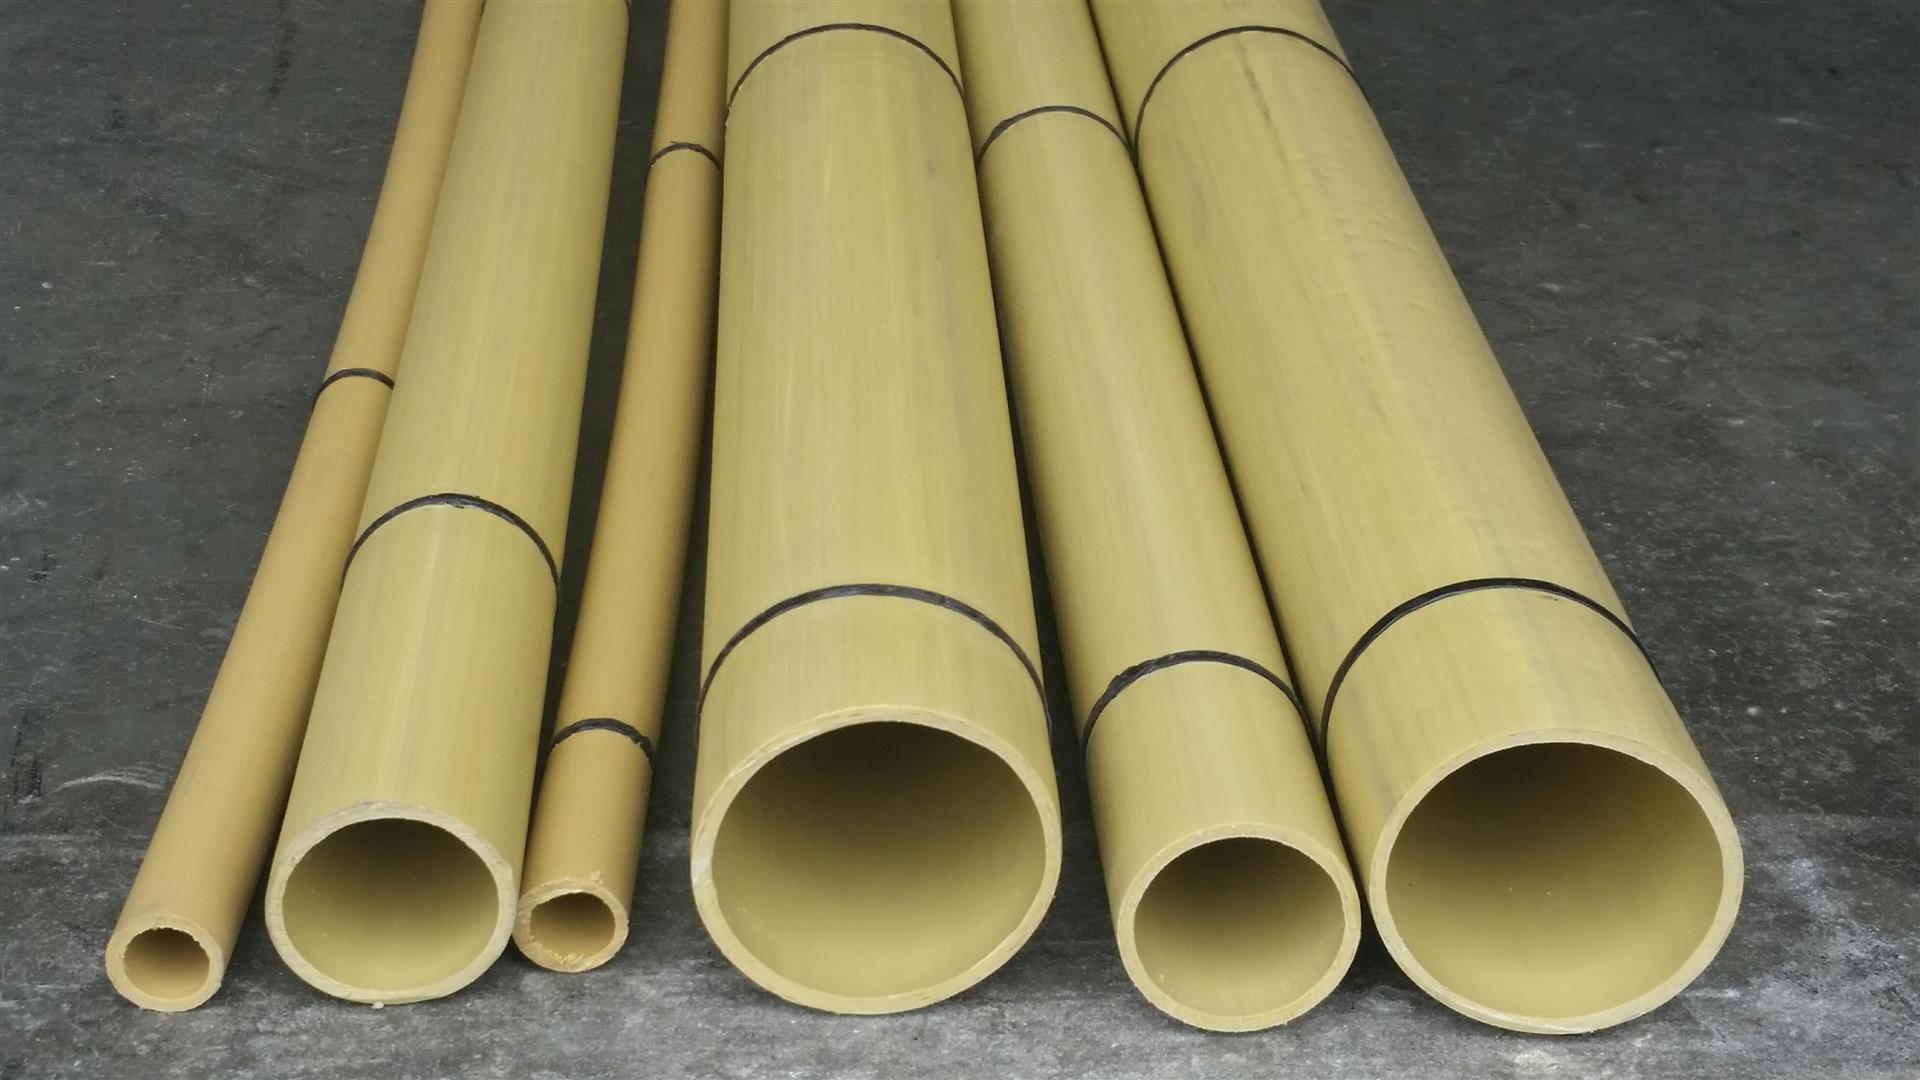 synthetic bamboo poles